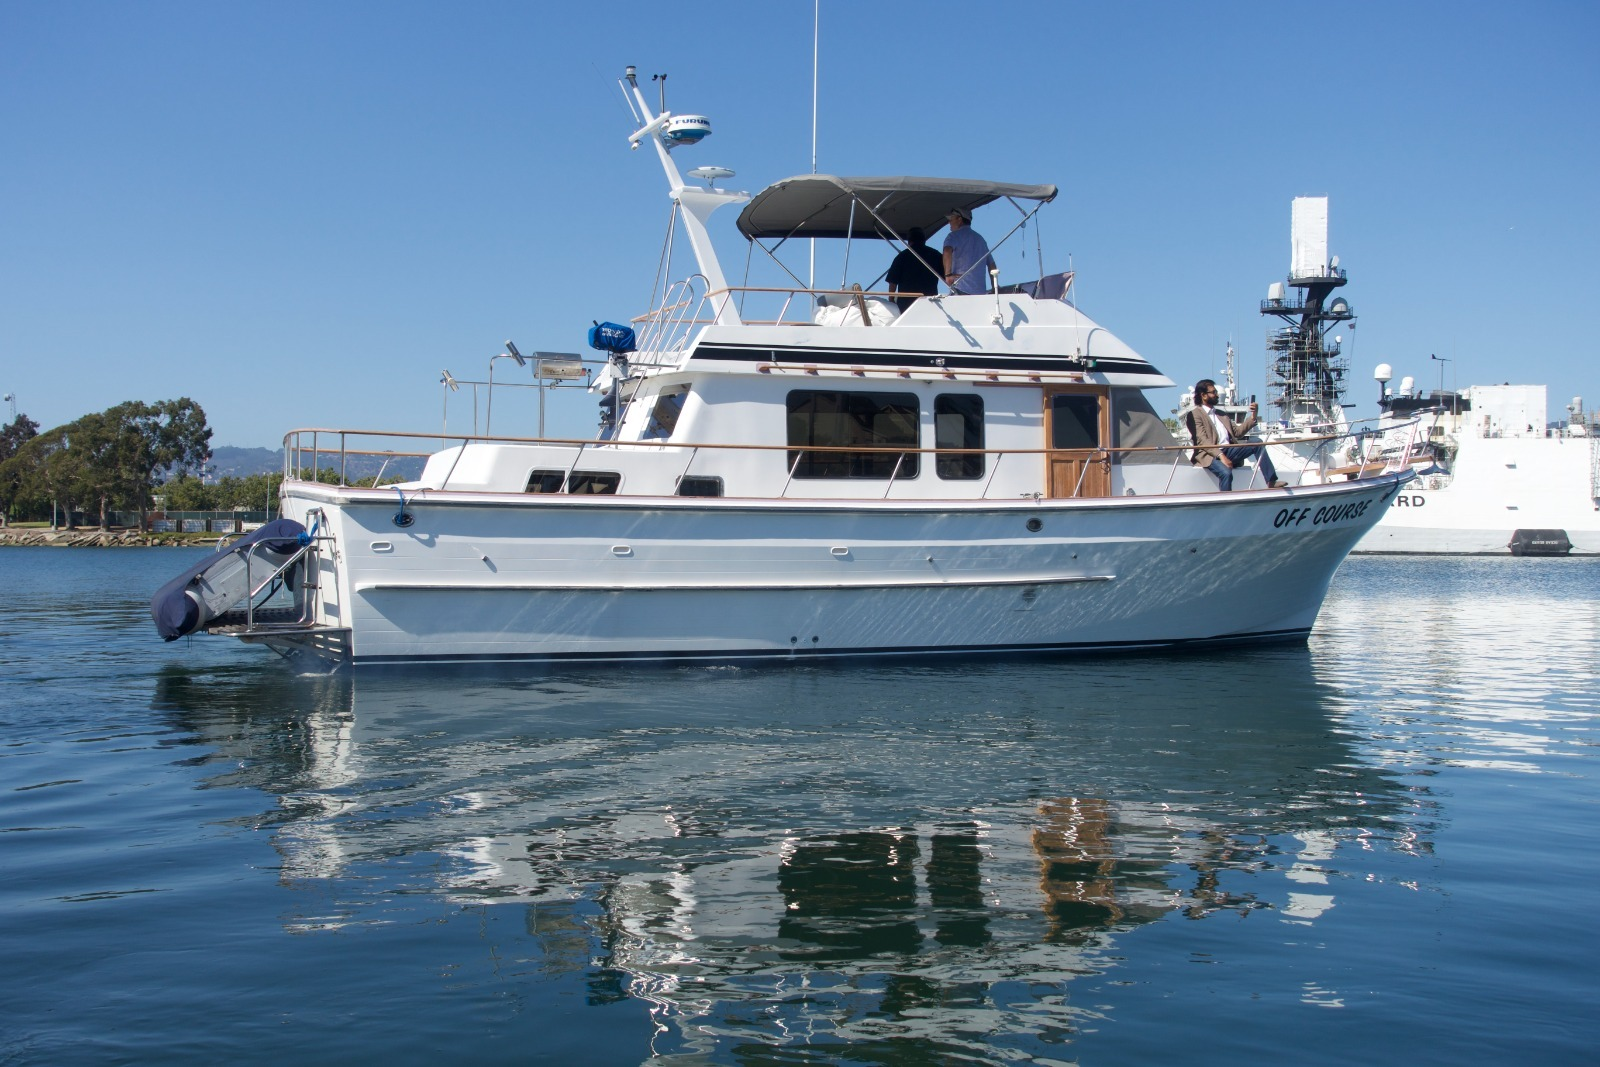 41' Trawler Off Course for Dockside events, charters and more